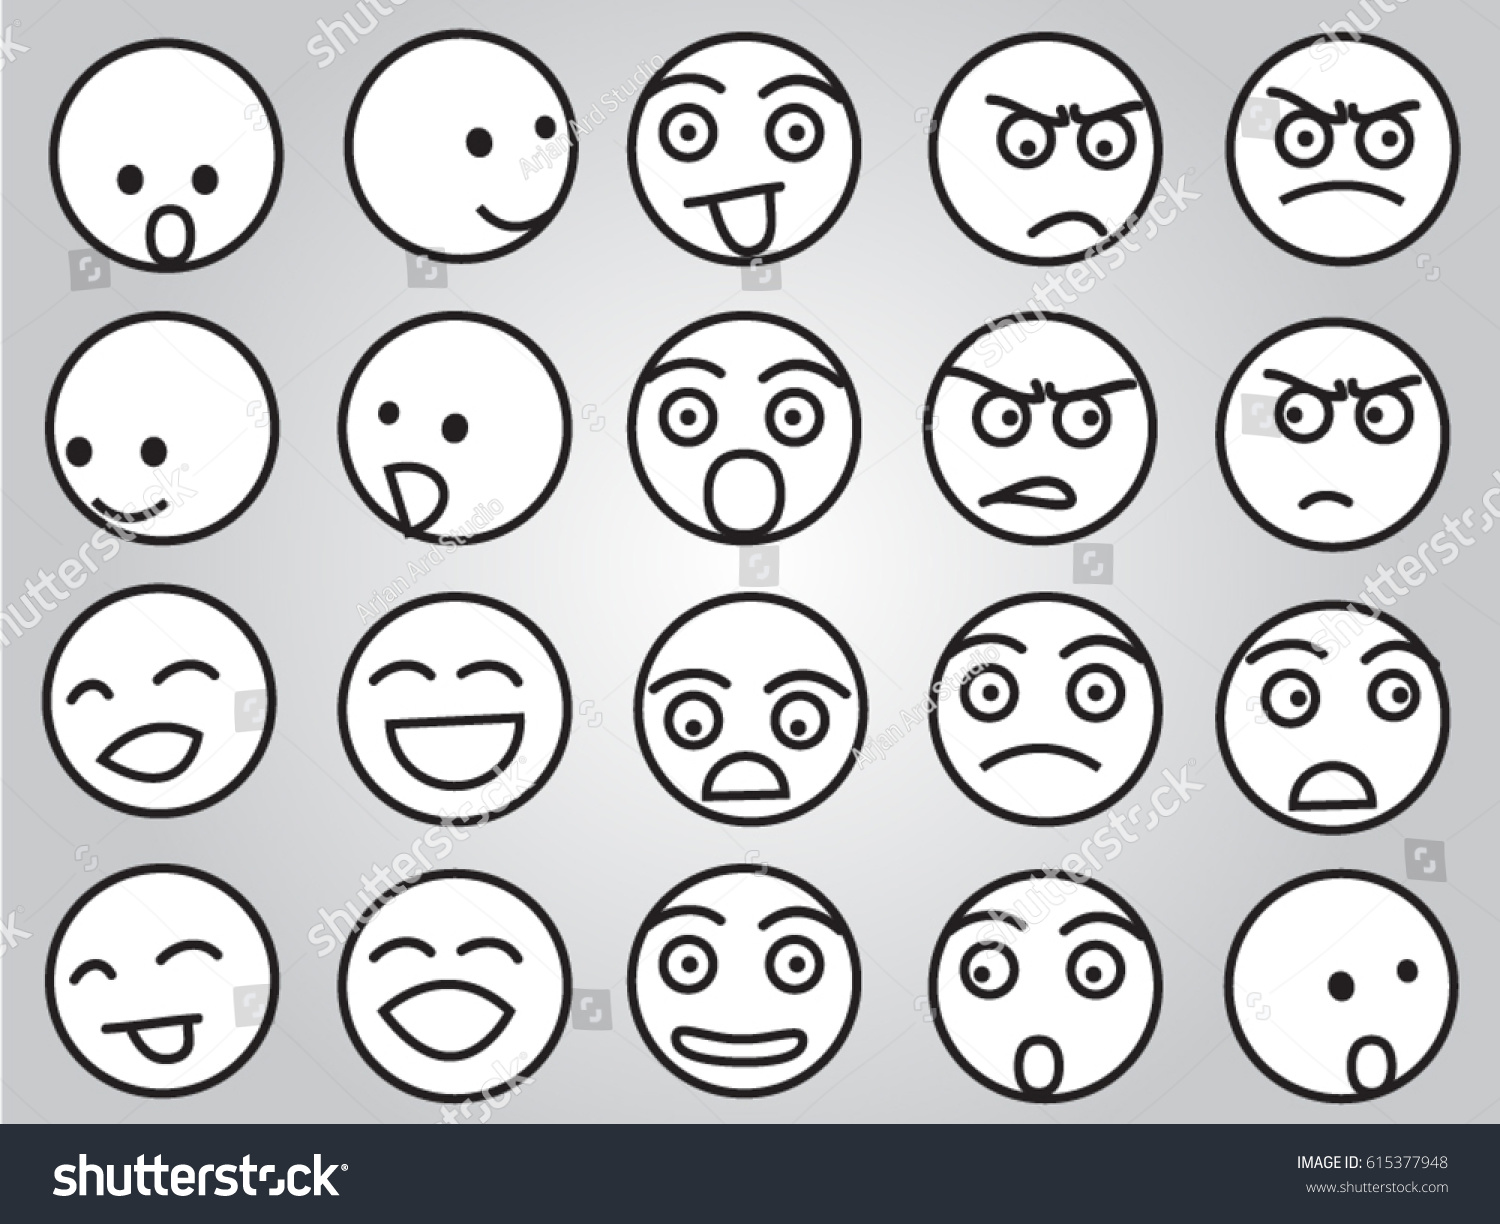 Worksheets Emotion Faces emotion faces black white stock vector 615377948 shutterstock in and white